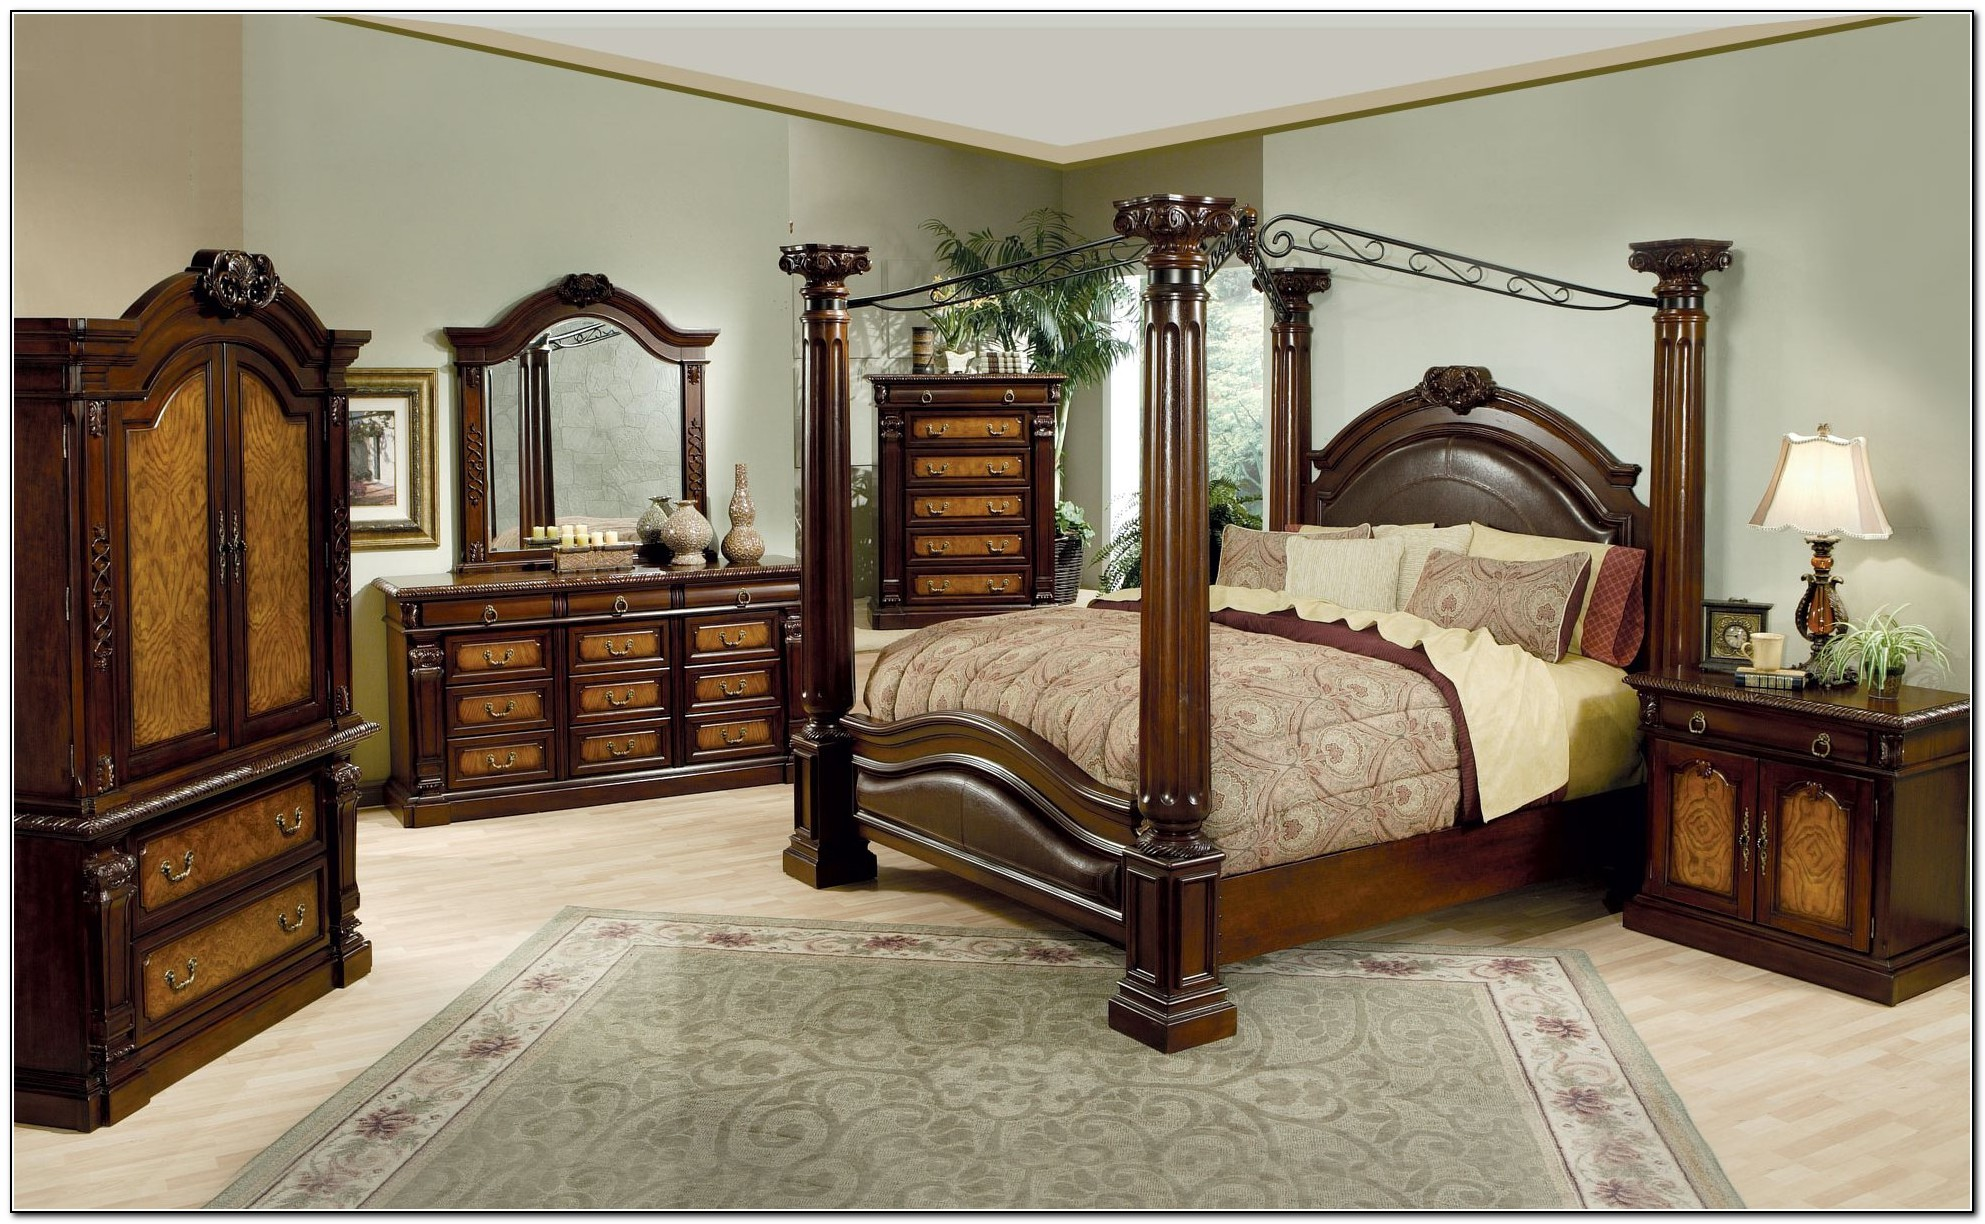 Bedroom: Wondrous King Size Canopy Bed